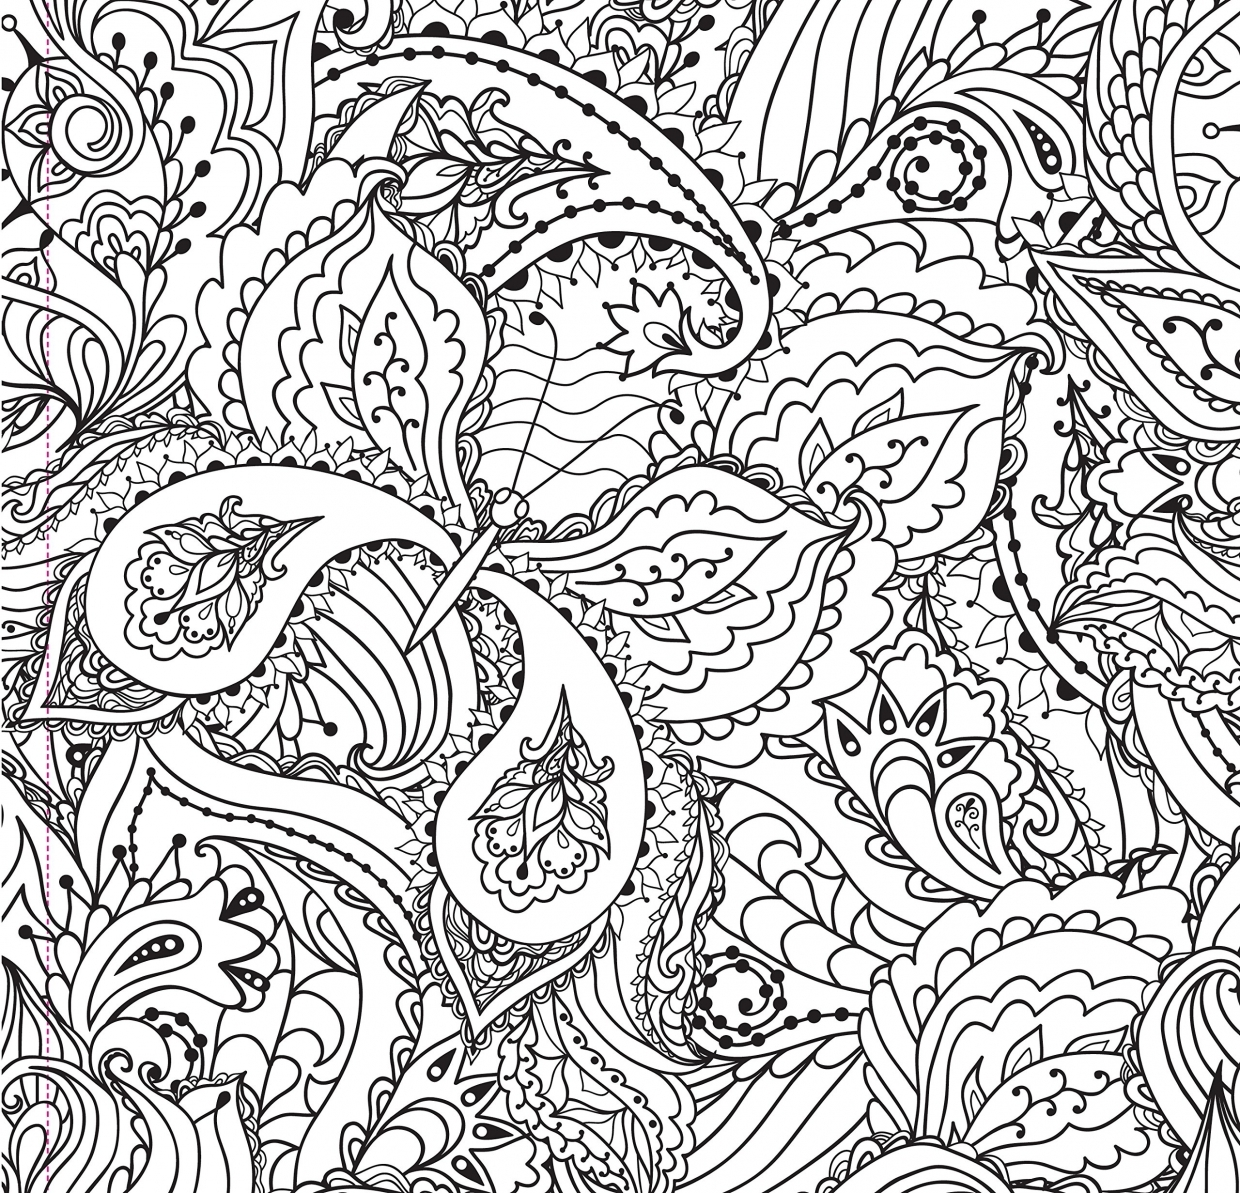 Get this free complex coloring pages printable xbrt5 for Free complex coloring pages